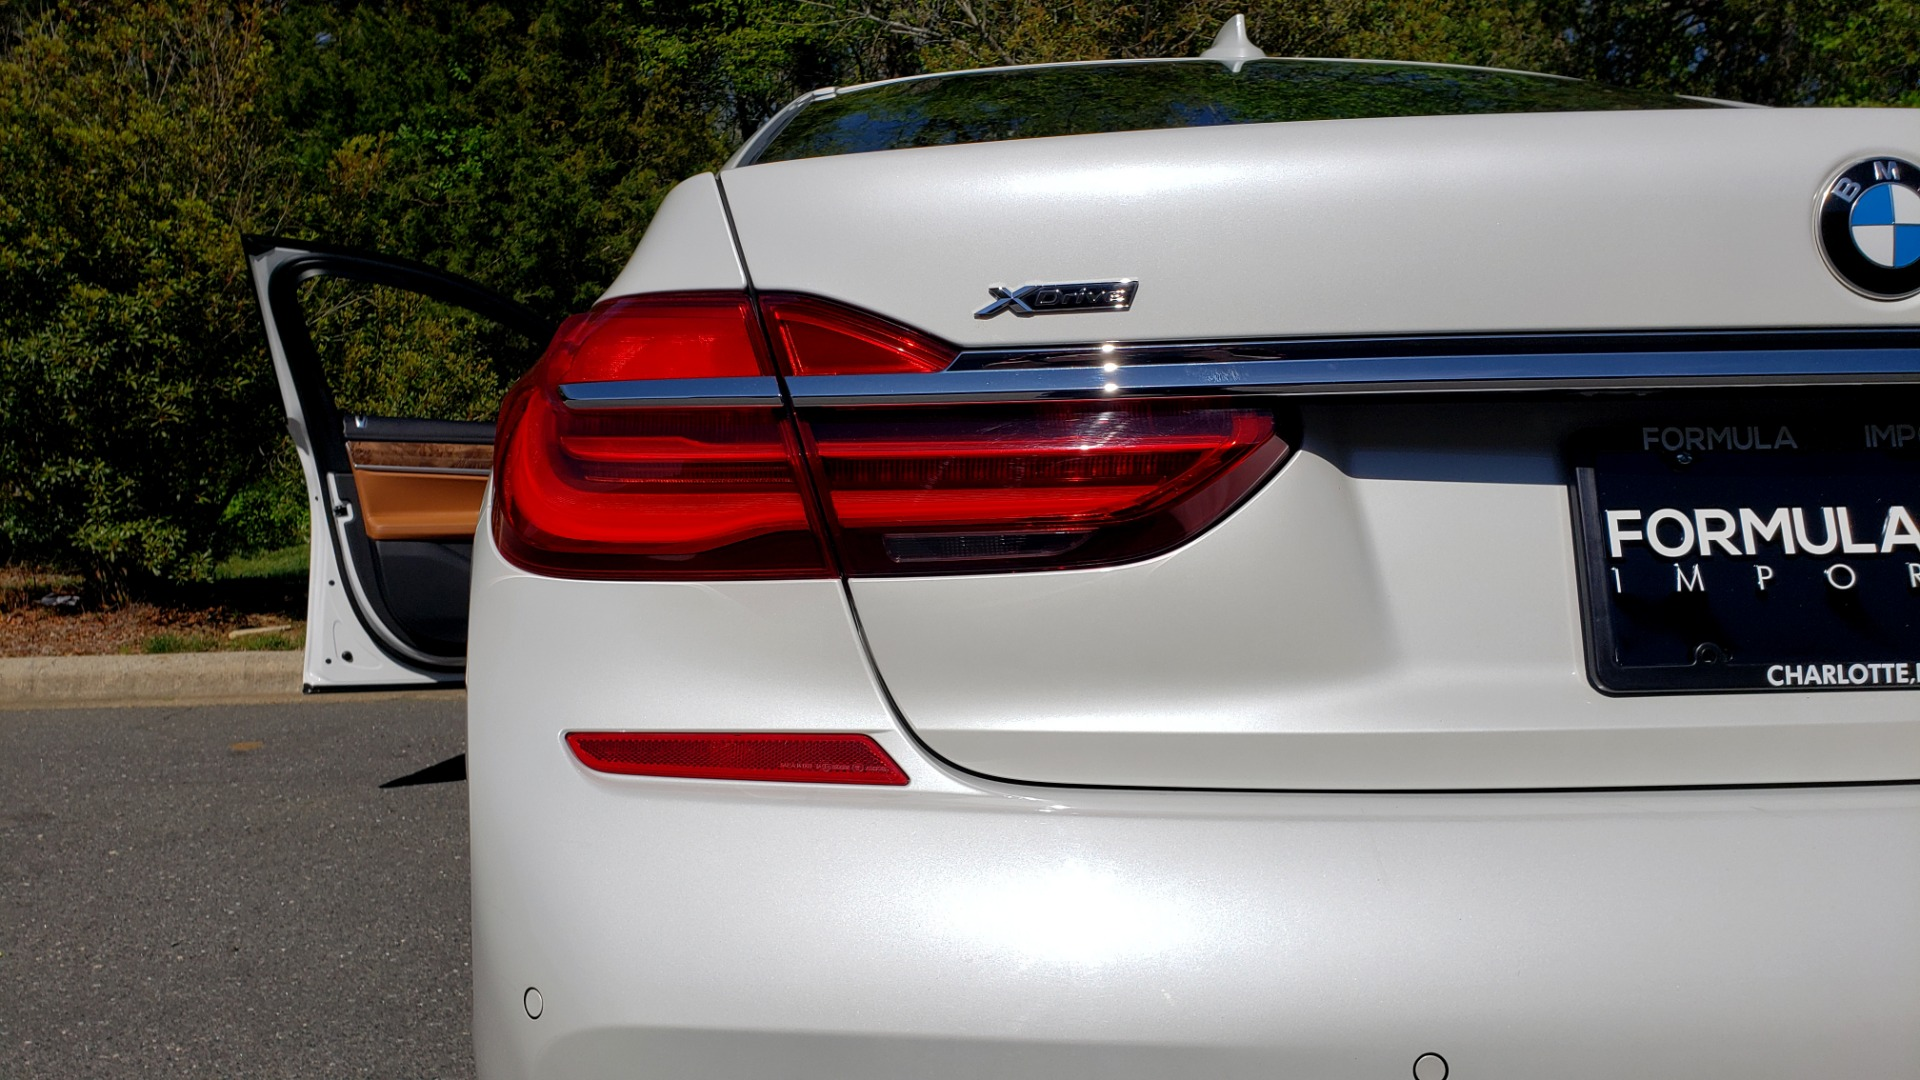 Used 2017 BMW 7 SERIES 750I XDRIVE / M-SPORT / EXEC PKG / DRVR ASST PLUS II / CLD WTHR for sale $48,495 at Formula Imports in Charlotte NC 28227 24